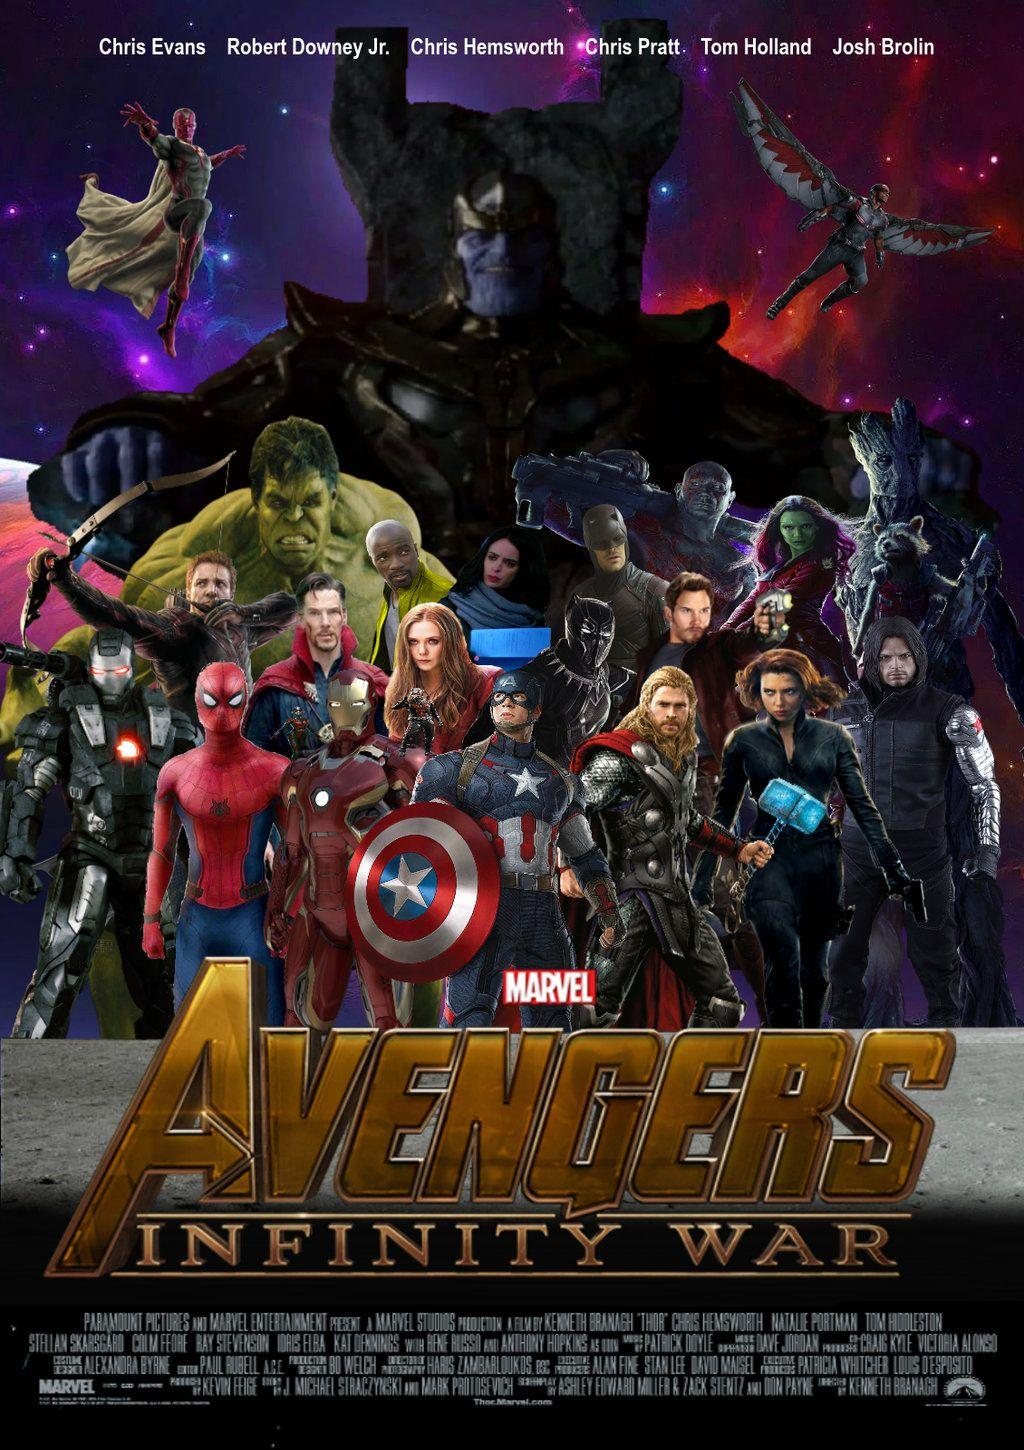 Avengers - Infinity War Movie Poster by jackjack671120 on DeviantArt